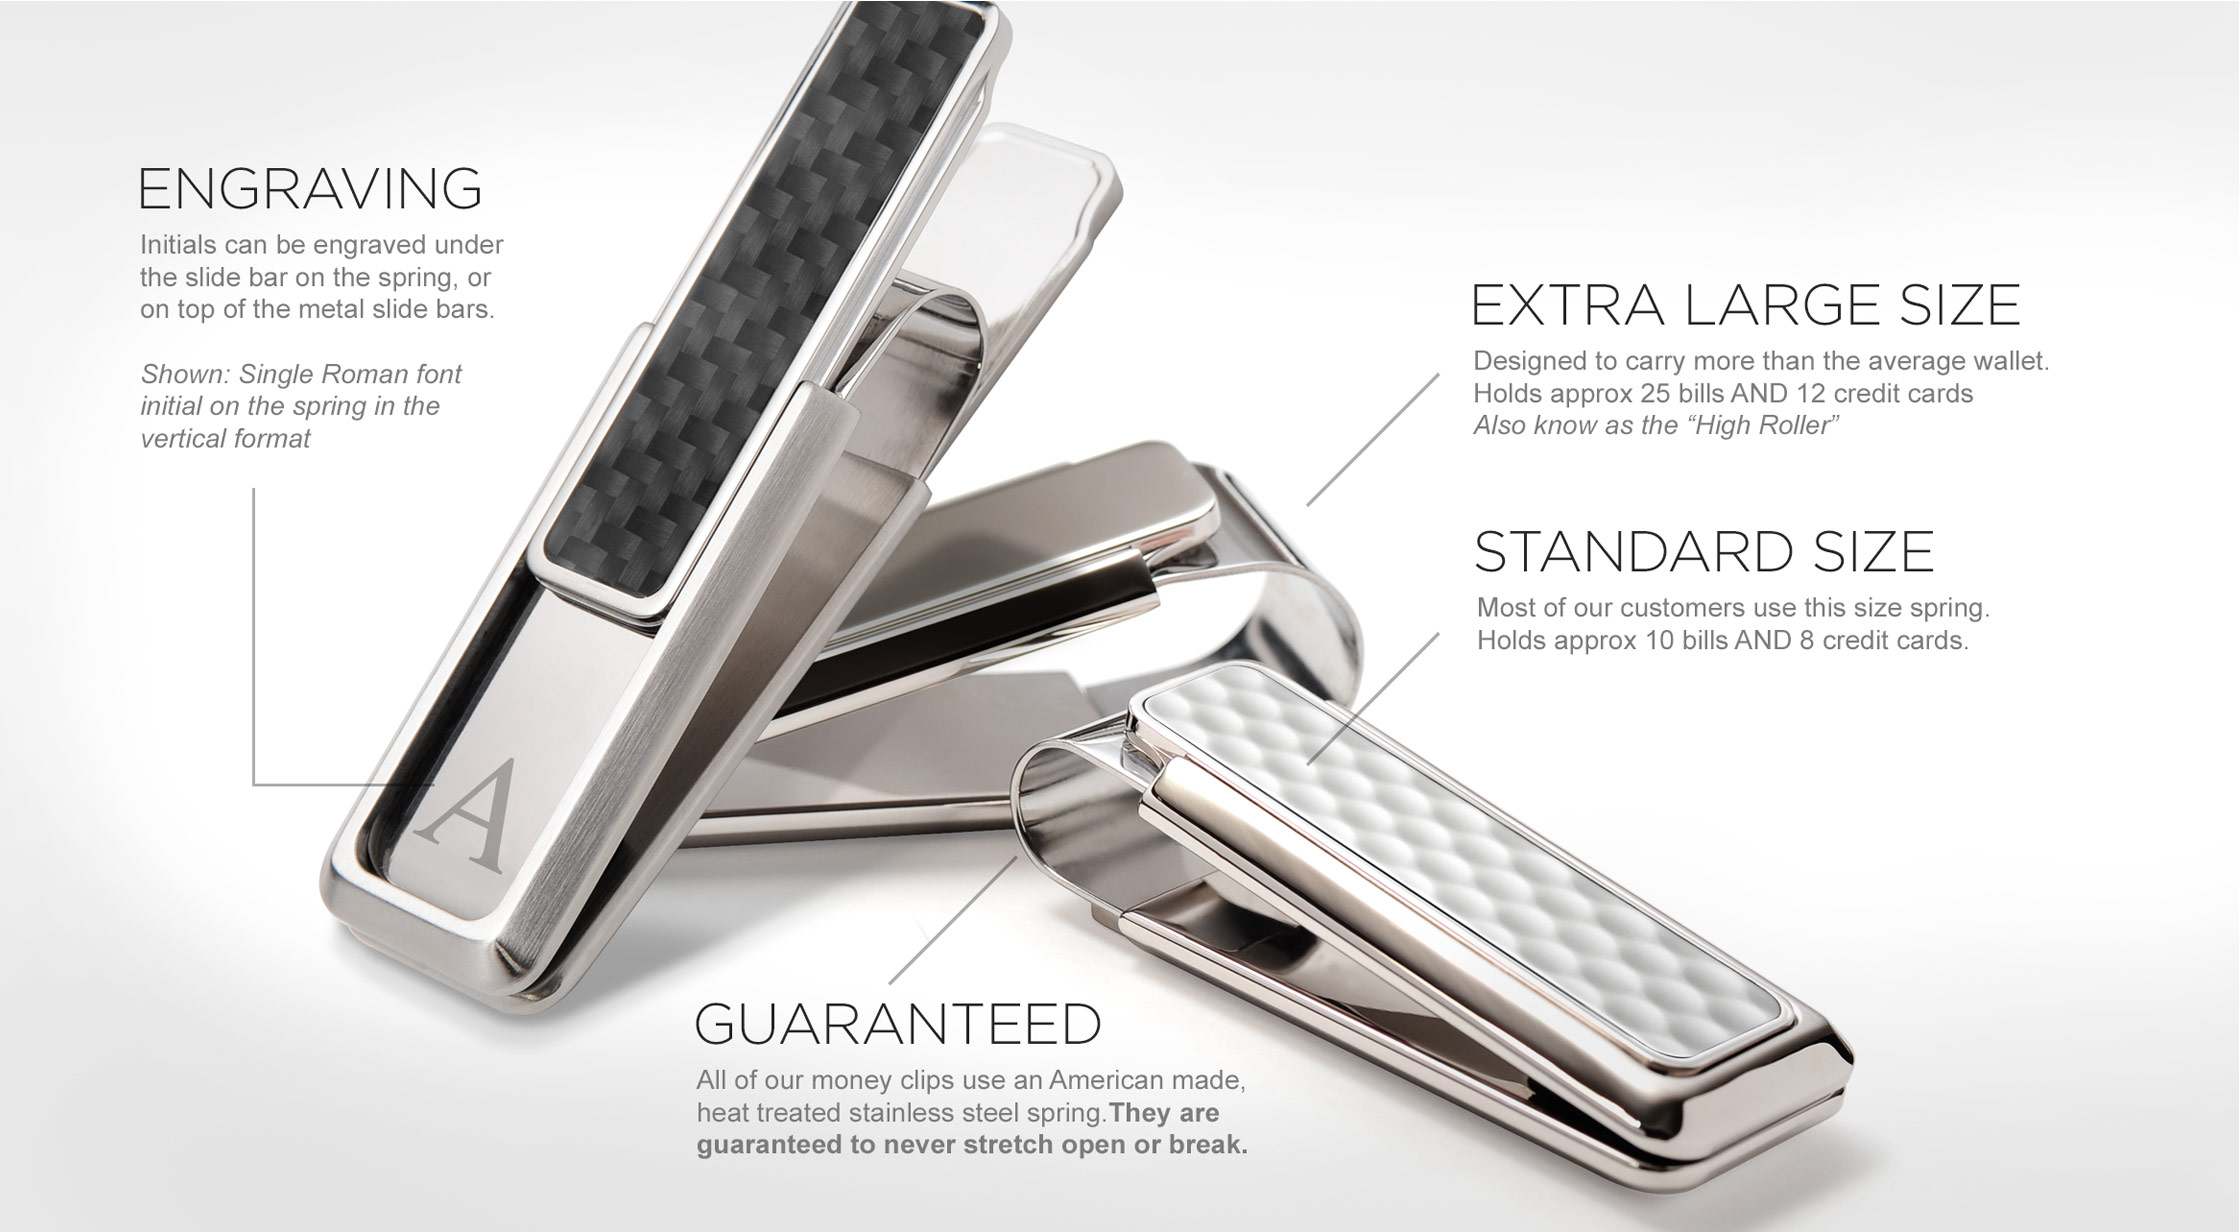 About our Money Clips